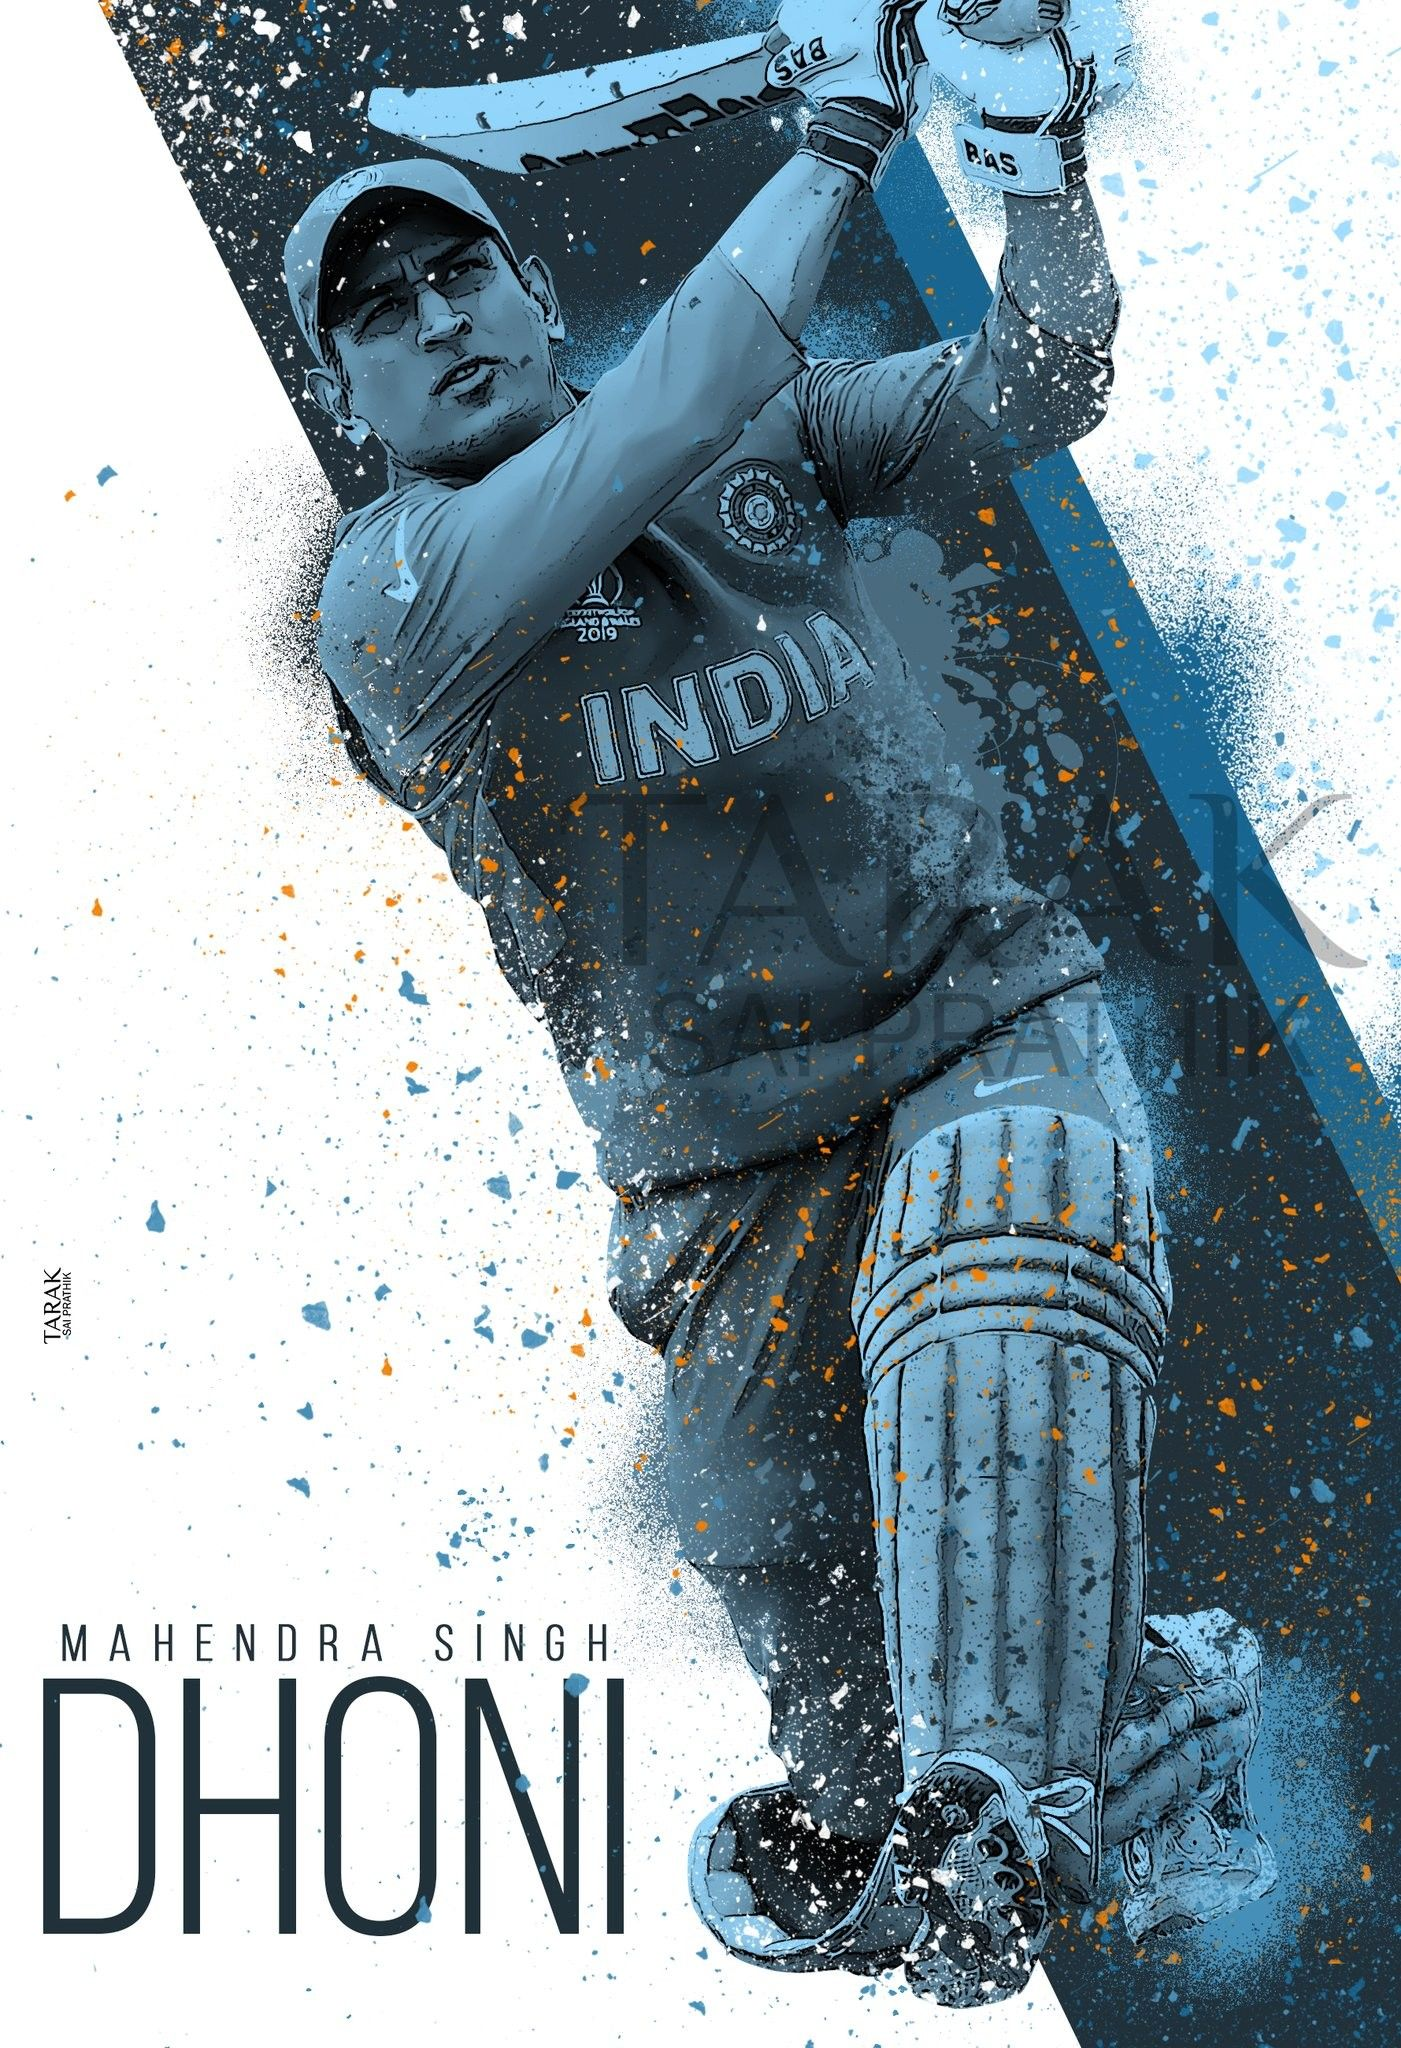 Happy Birthday Msd Ms Dhoni Wallpapers Dhoni Wallpapers Cricket Wallpapers